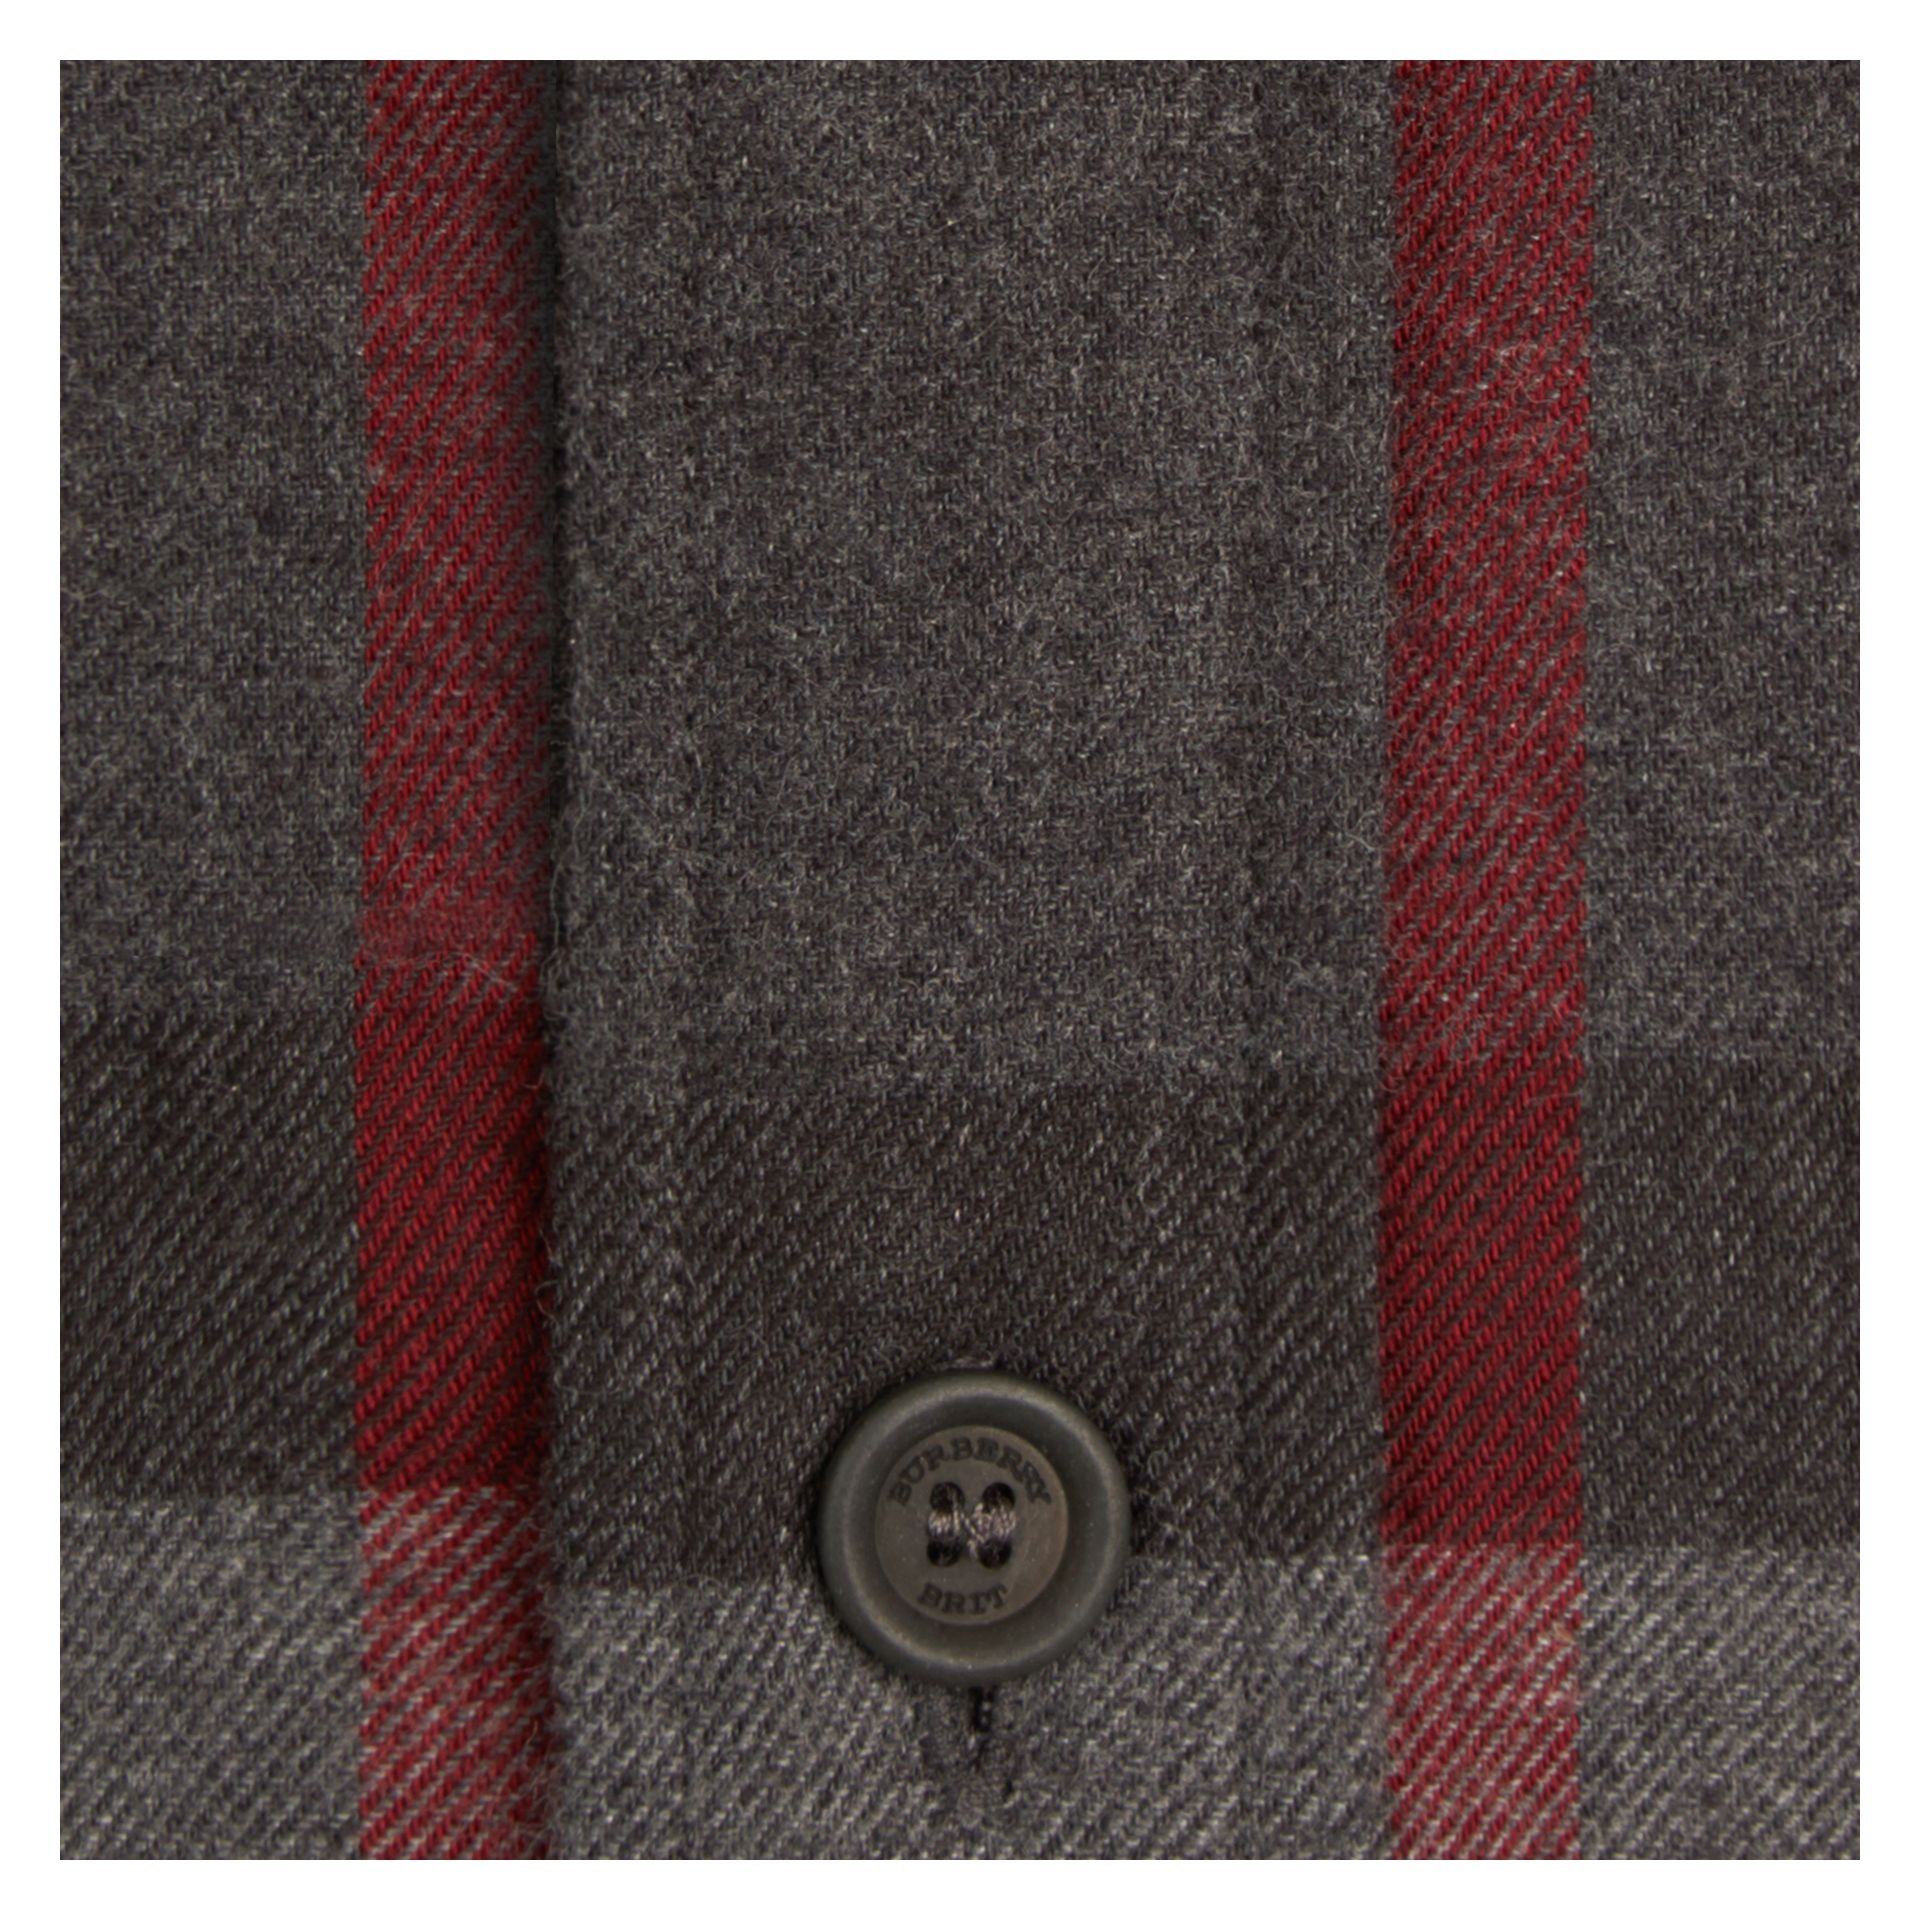 Charcoal Check Cotton Flannel Shirt Charcoal - gallery image 2